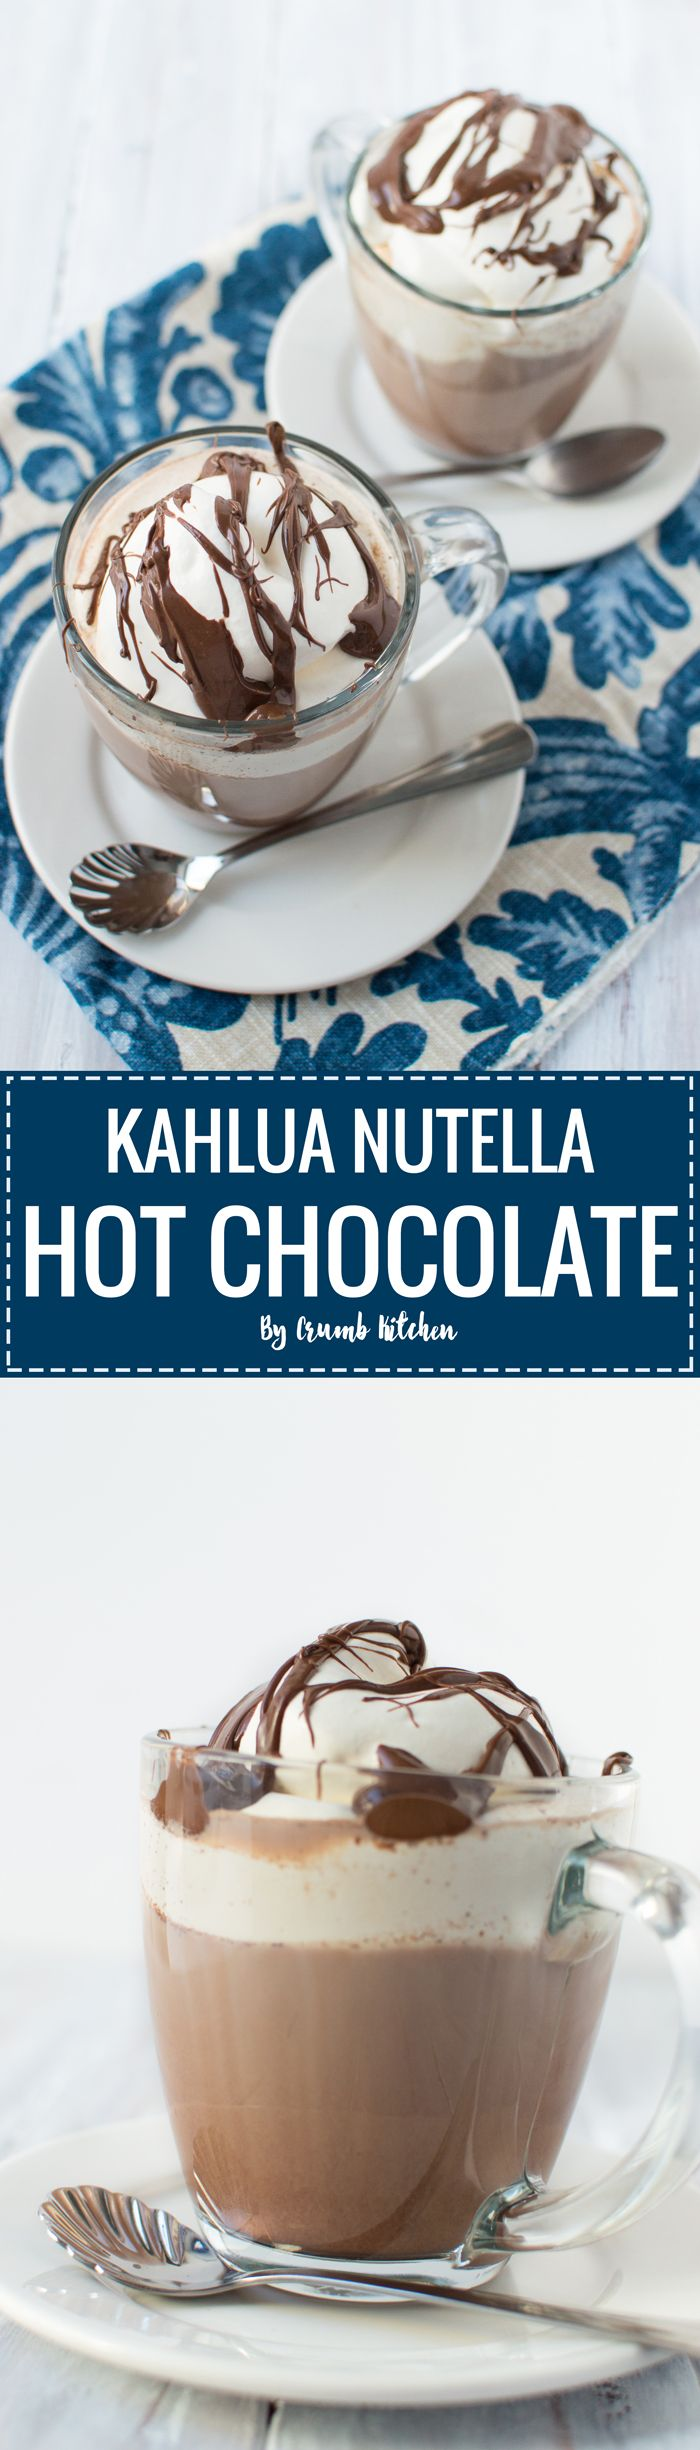 Rich homemade hot chocolate infused with Kahlua coffee-flavoured liquor, topped with whipped cream and melted Nutella. | crumbkitchen.com